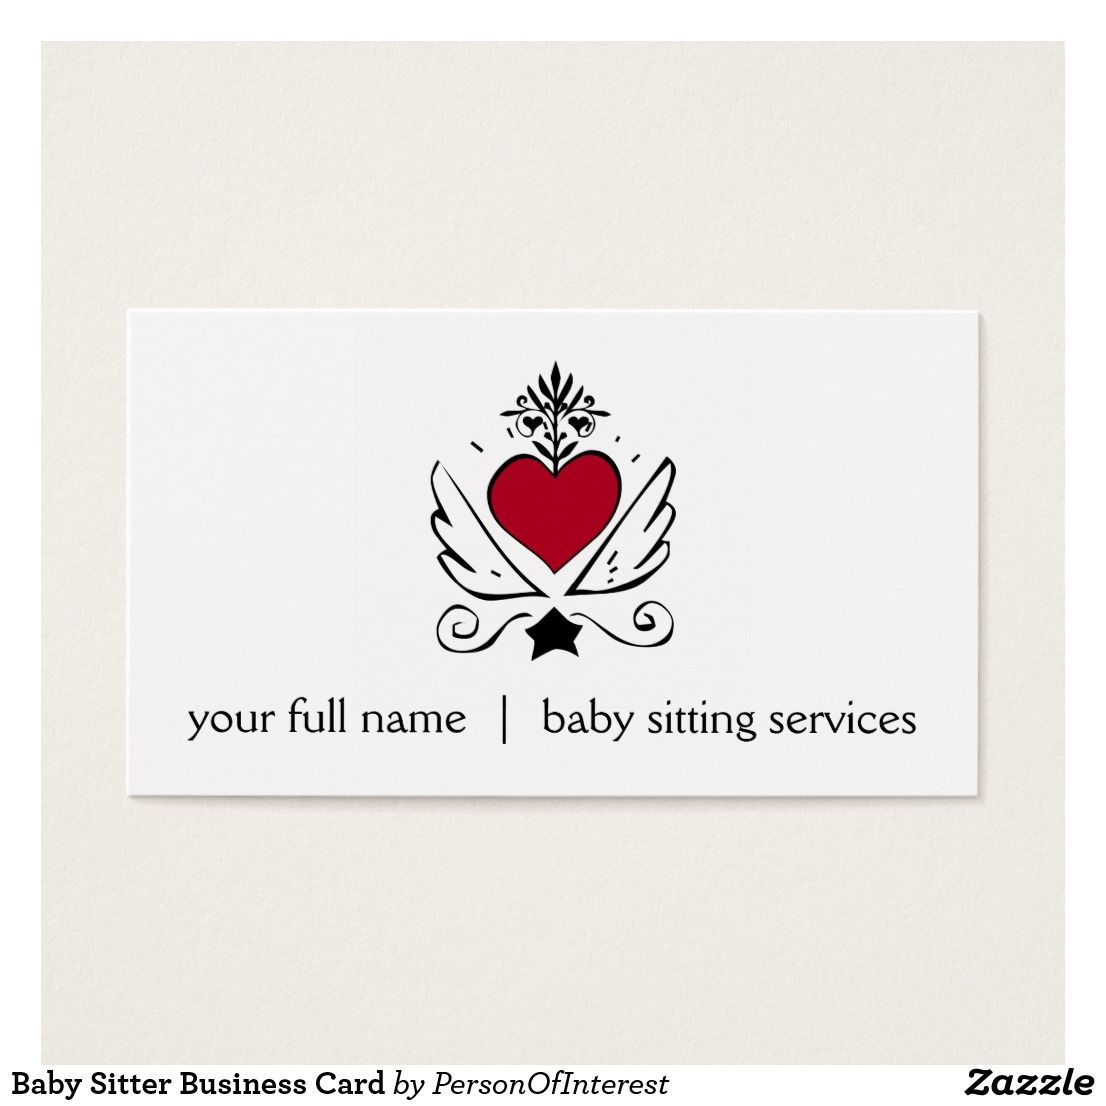 Baby sitter business card with red heart with wings cute